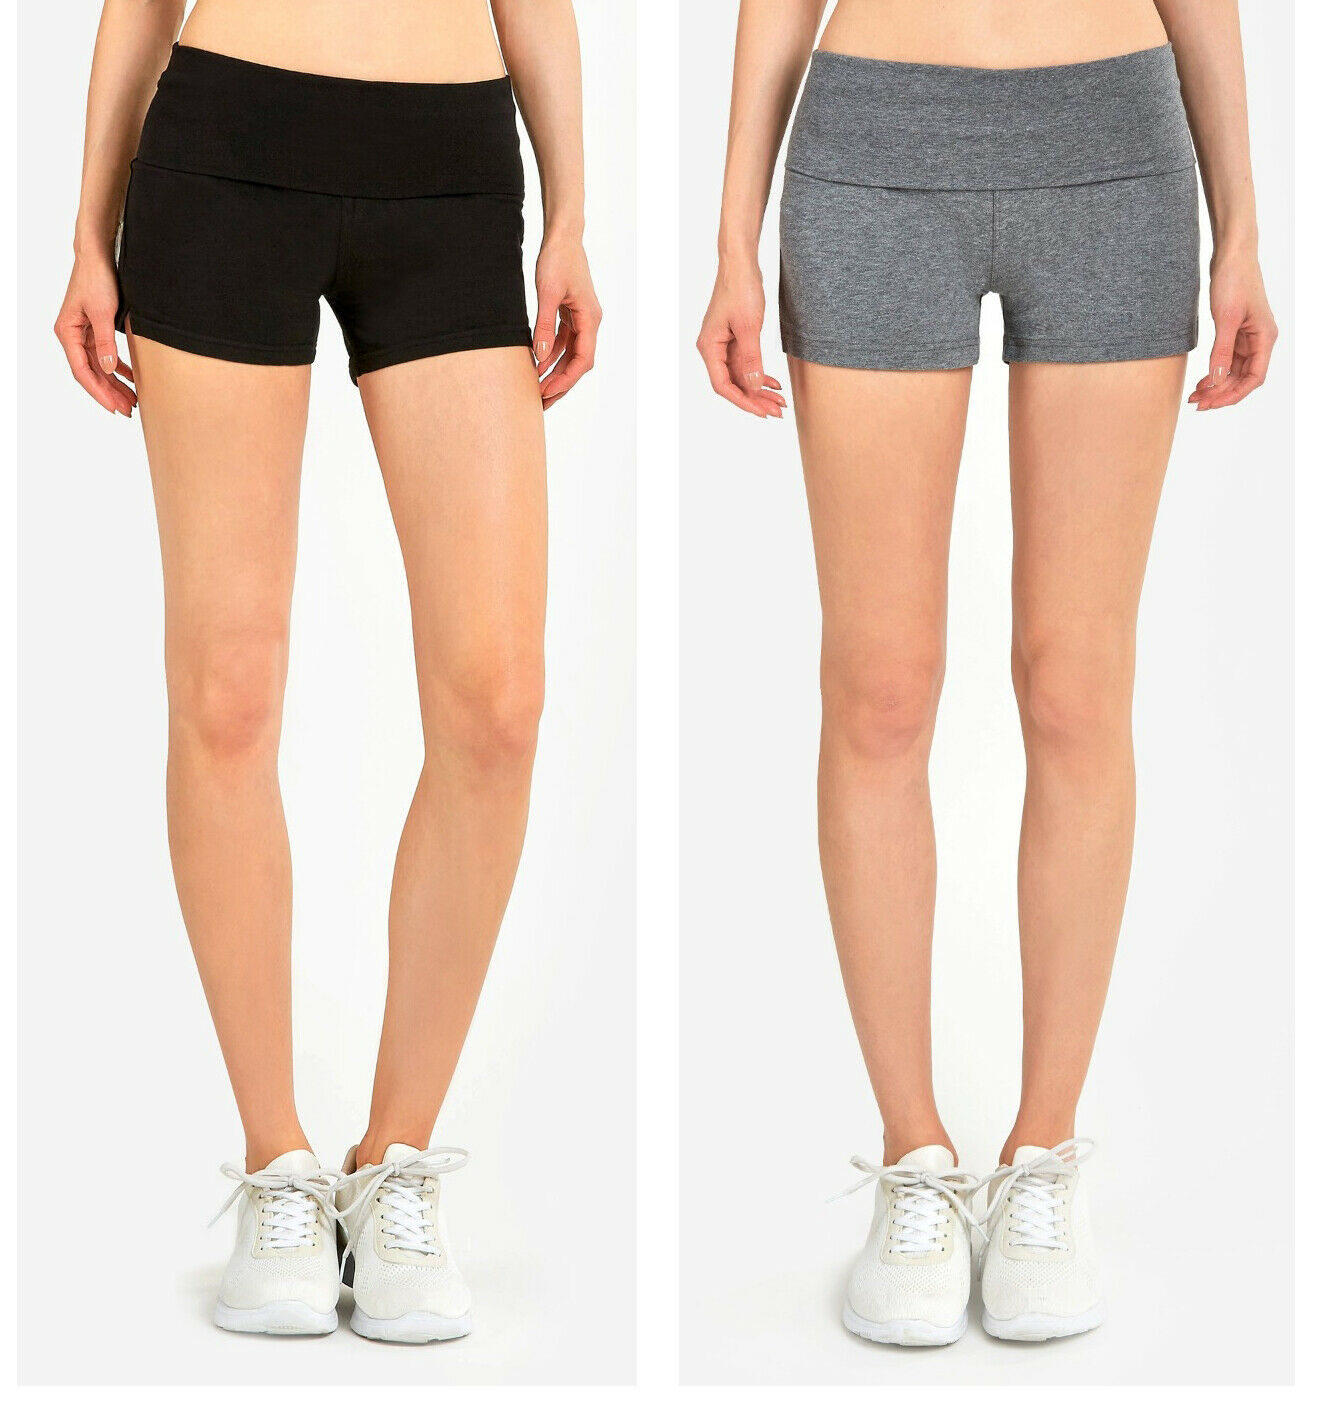 Ladies 5″ High Waist Cotton Spandex Yoga Workout Bike Shorts Hot Pants Activewear